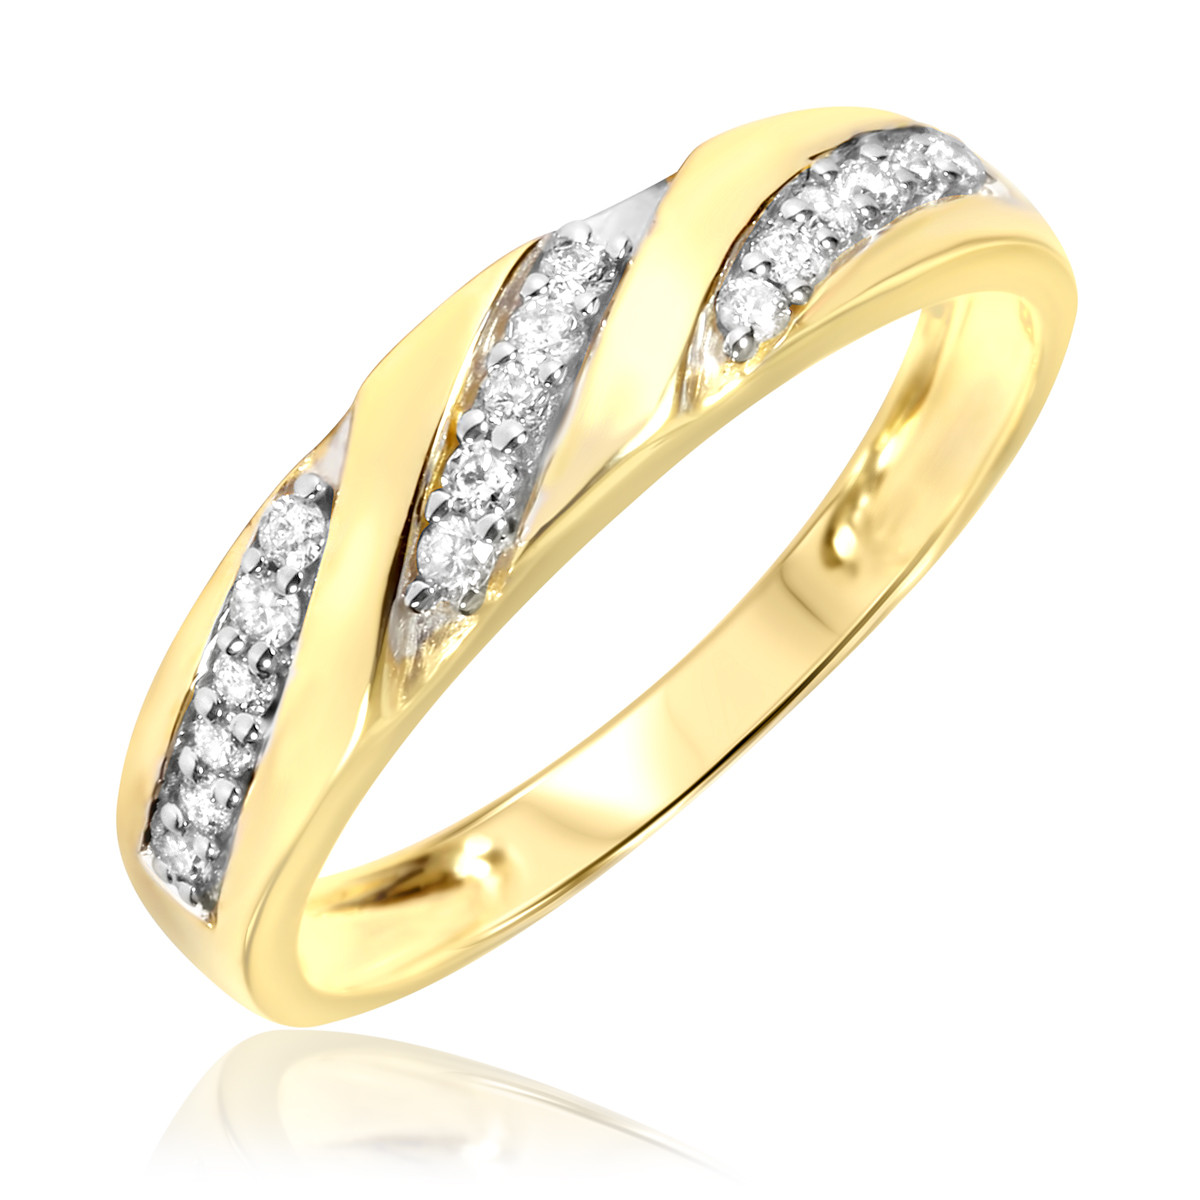 1 4 Carat TW Diamond Mens Wedding Ring 14K Yellow Gold